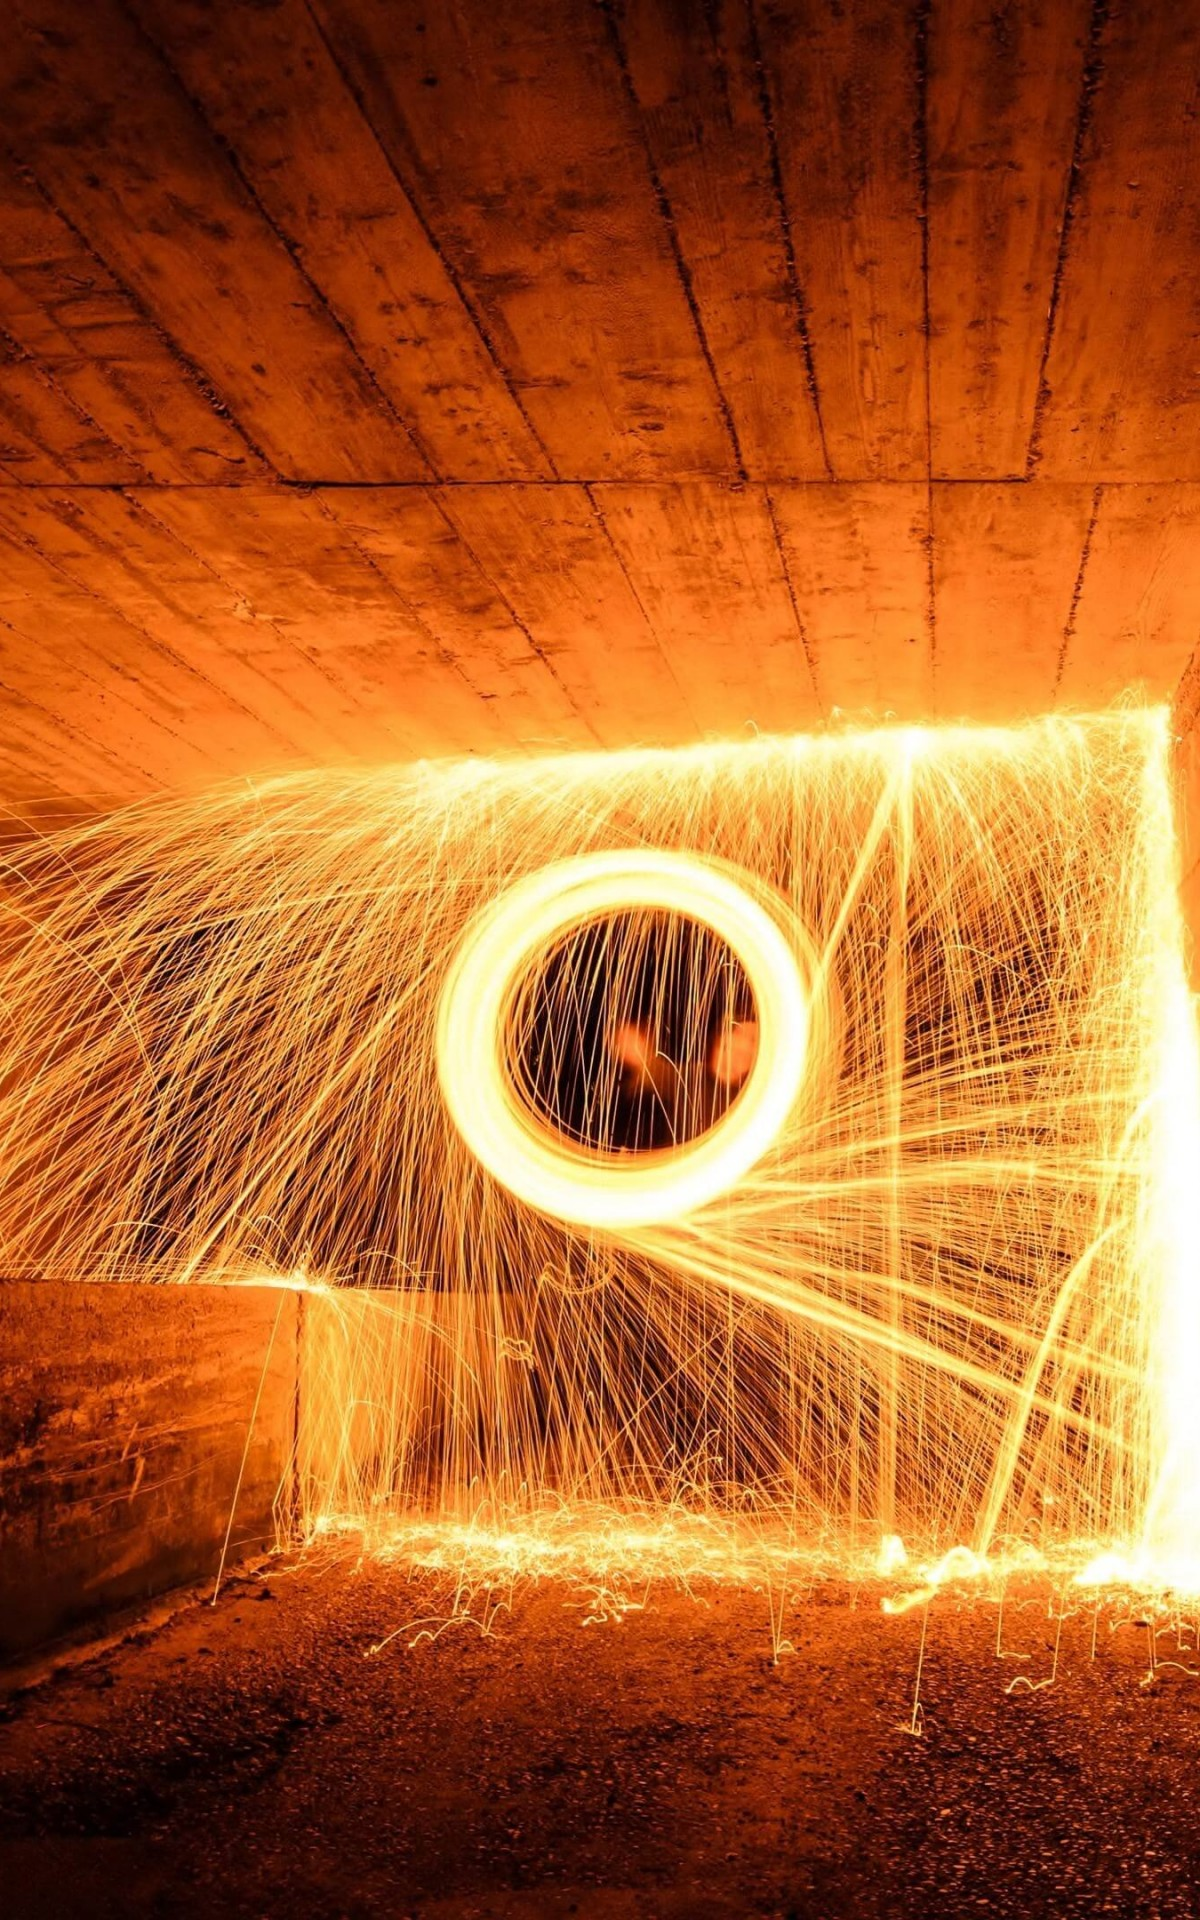 Wire Wool Long Exposure Wallpaper for Amazon Kindle Fire HDX